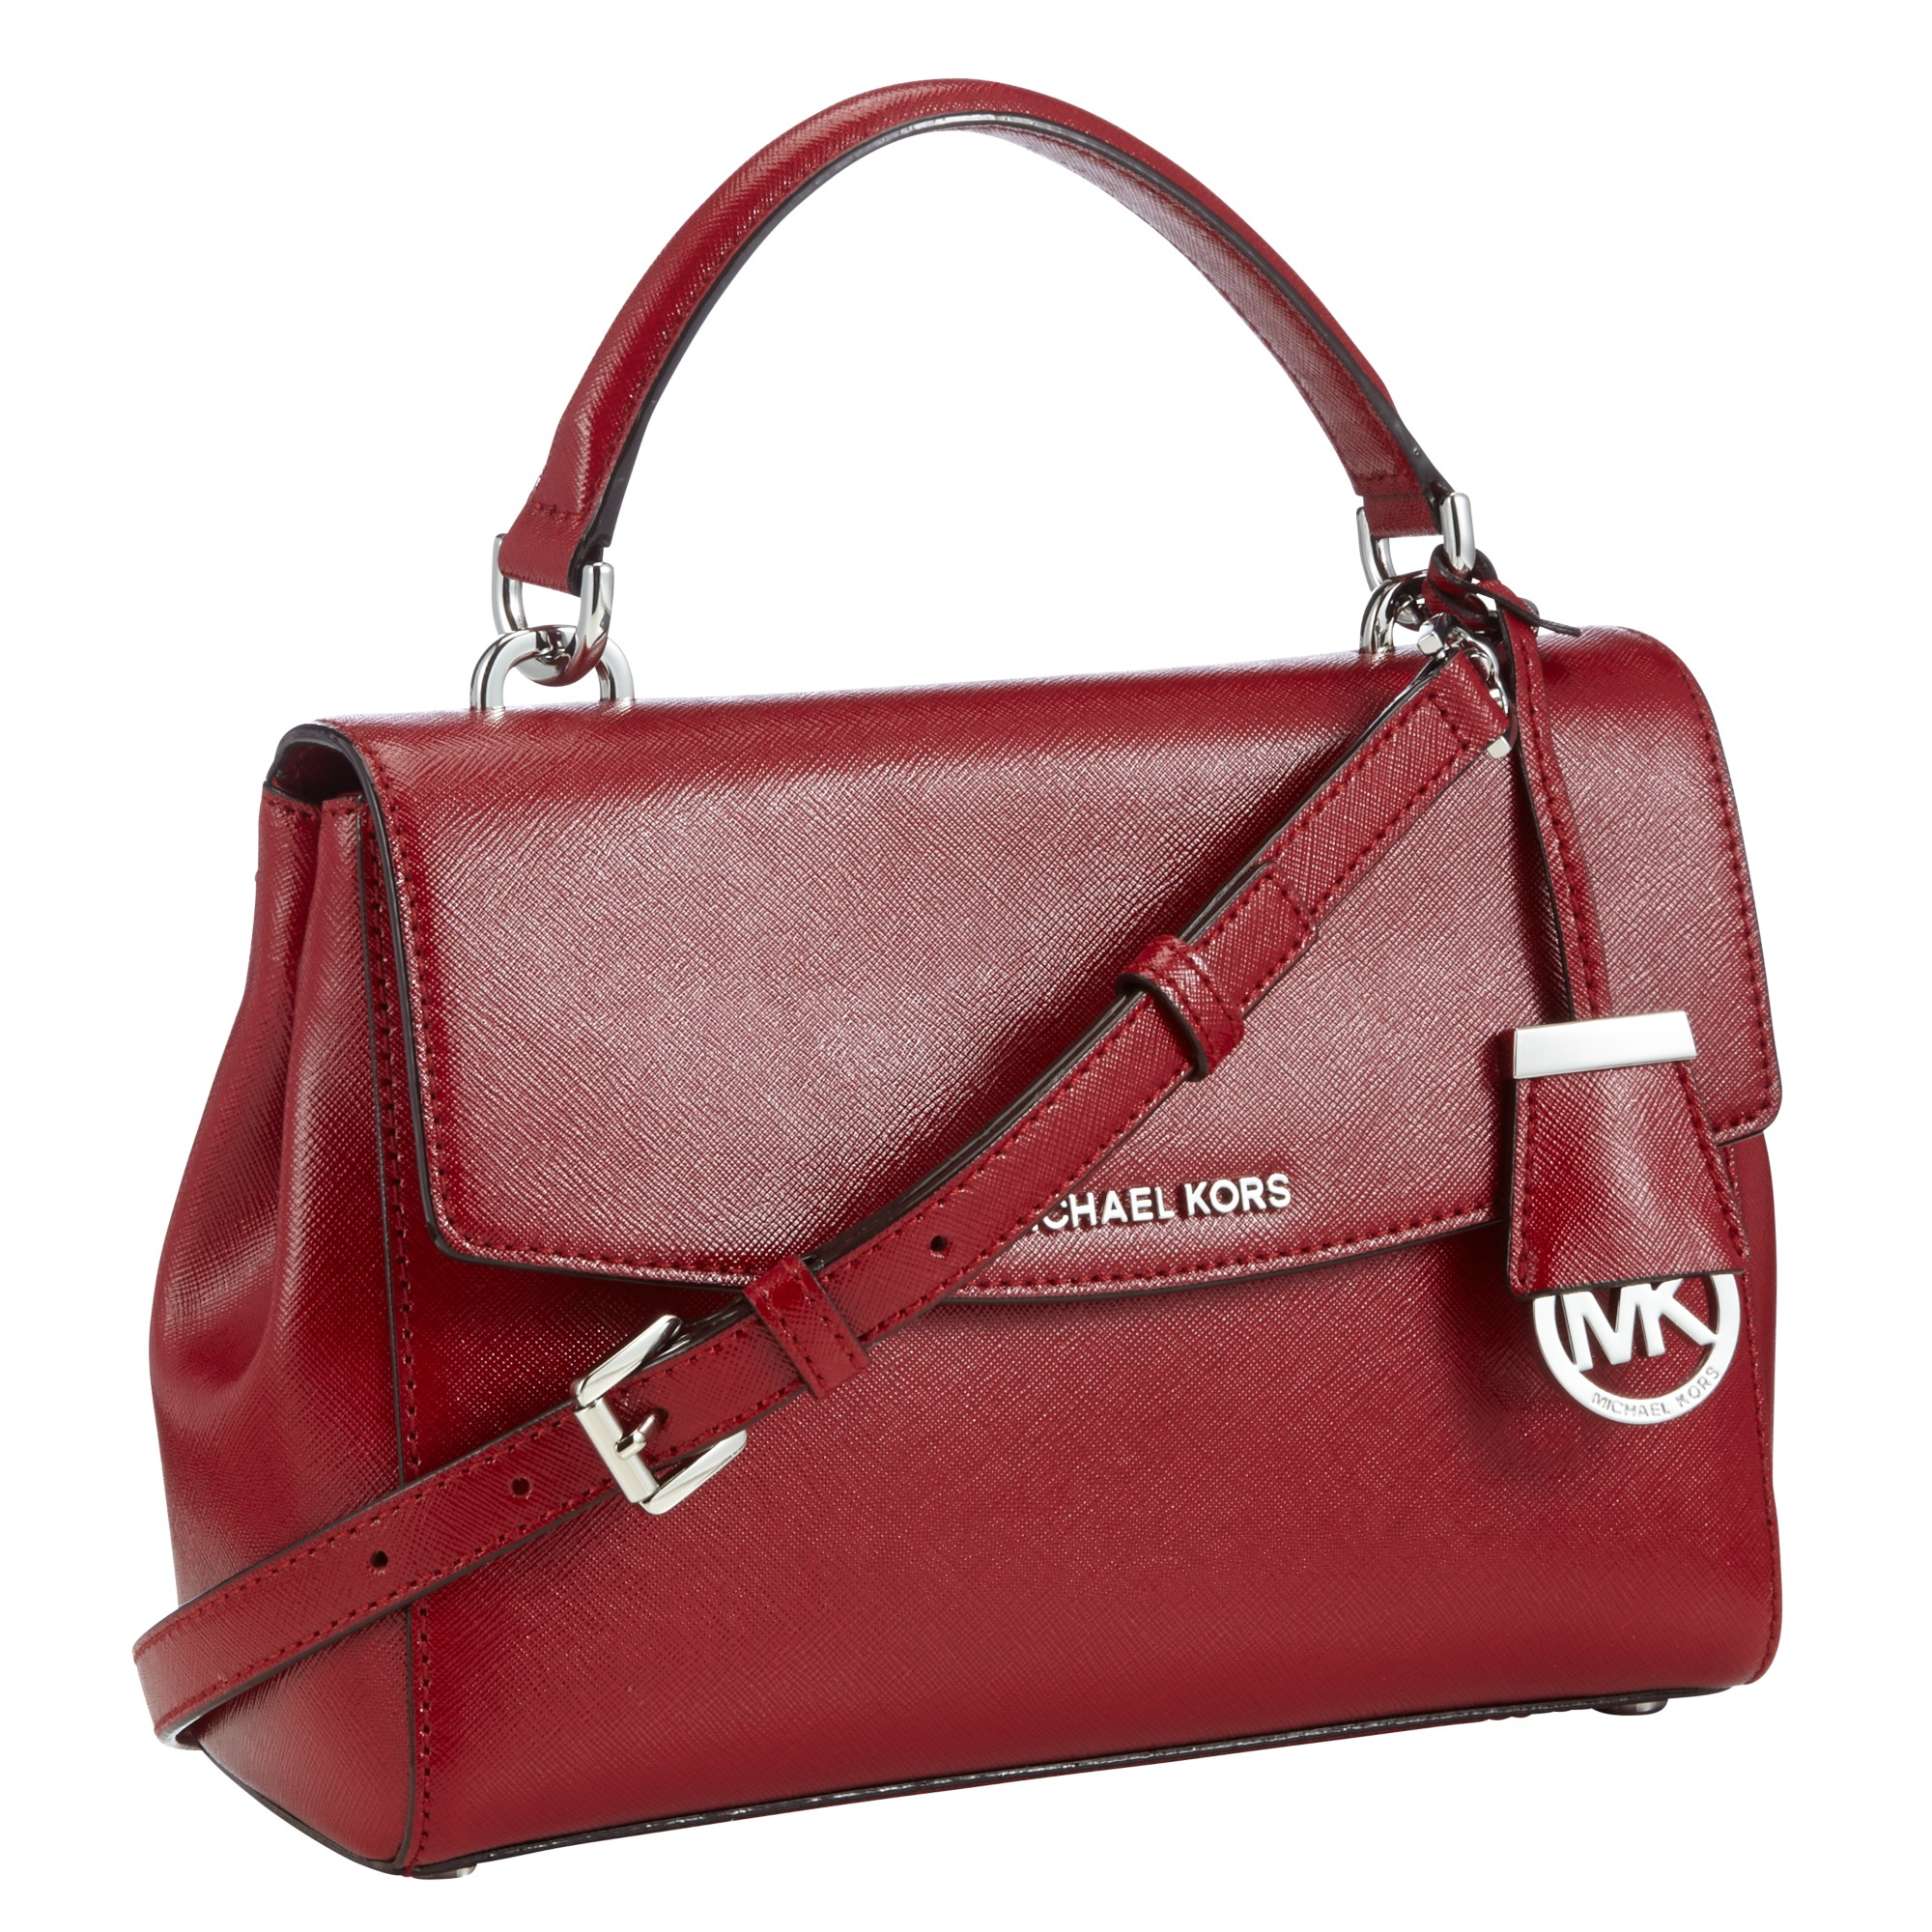 Michael Michael Kors Ava Small Leather Satchel In Red Lyst